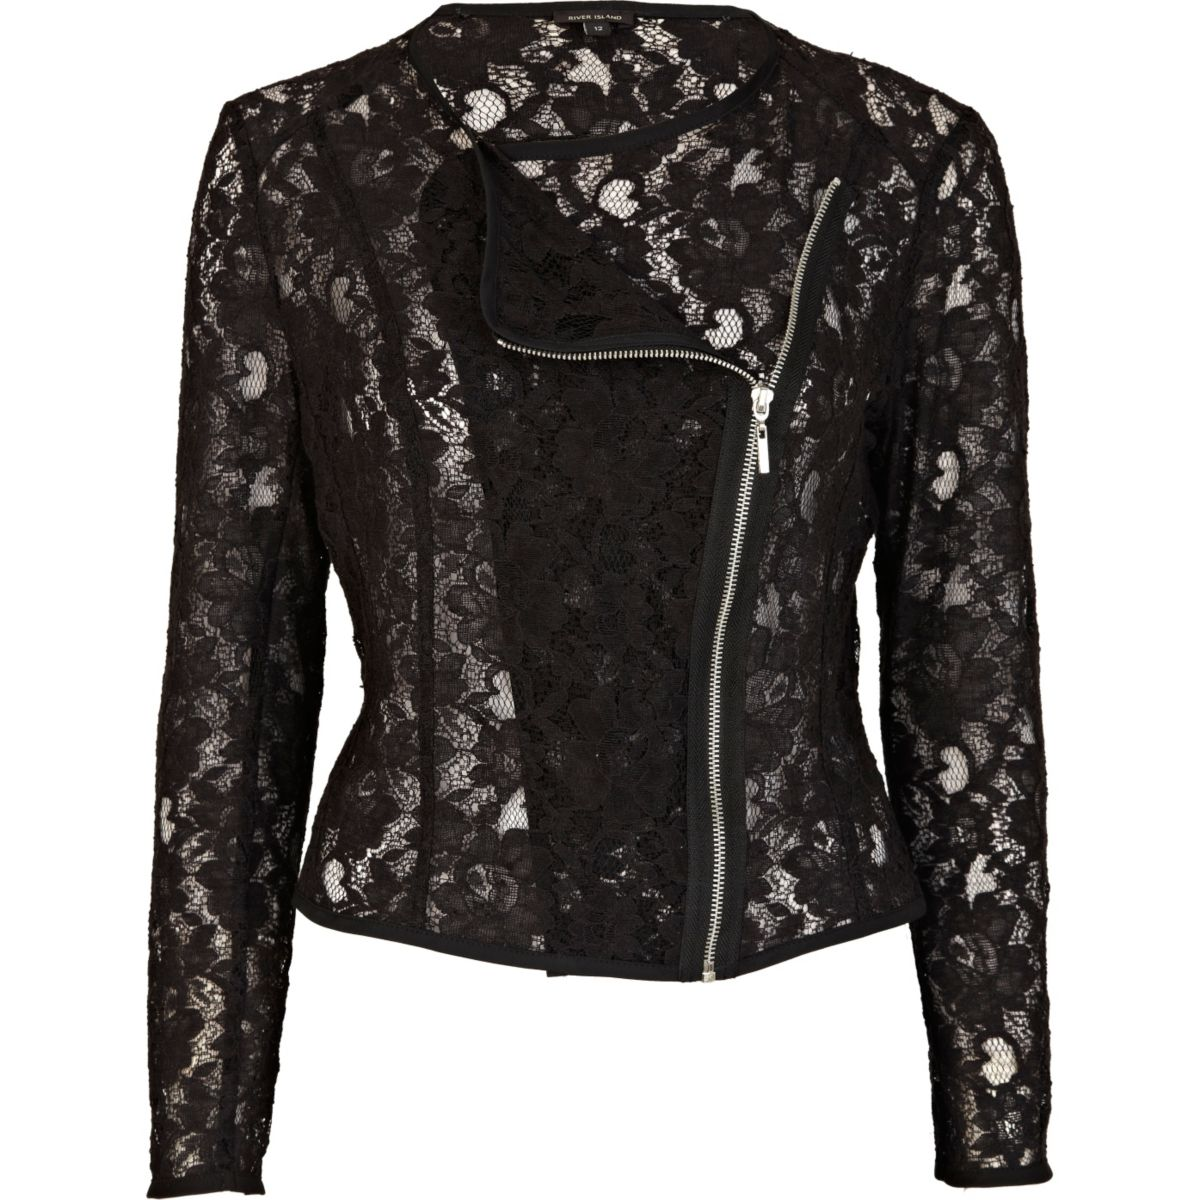 More Details Caroline Rose Luxury Lace Jacket, Gold/Black, Petite Details Caroline Rose metallic lace jacket. Shawl collar; open front. Three-quarter sleeves. Relaxed silhouette. Scalloped hem. Polyester. Made in USA of imported material. Designer.